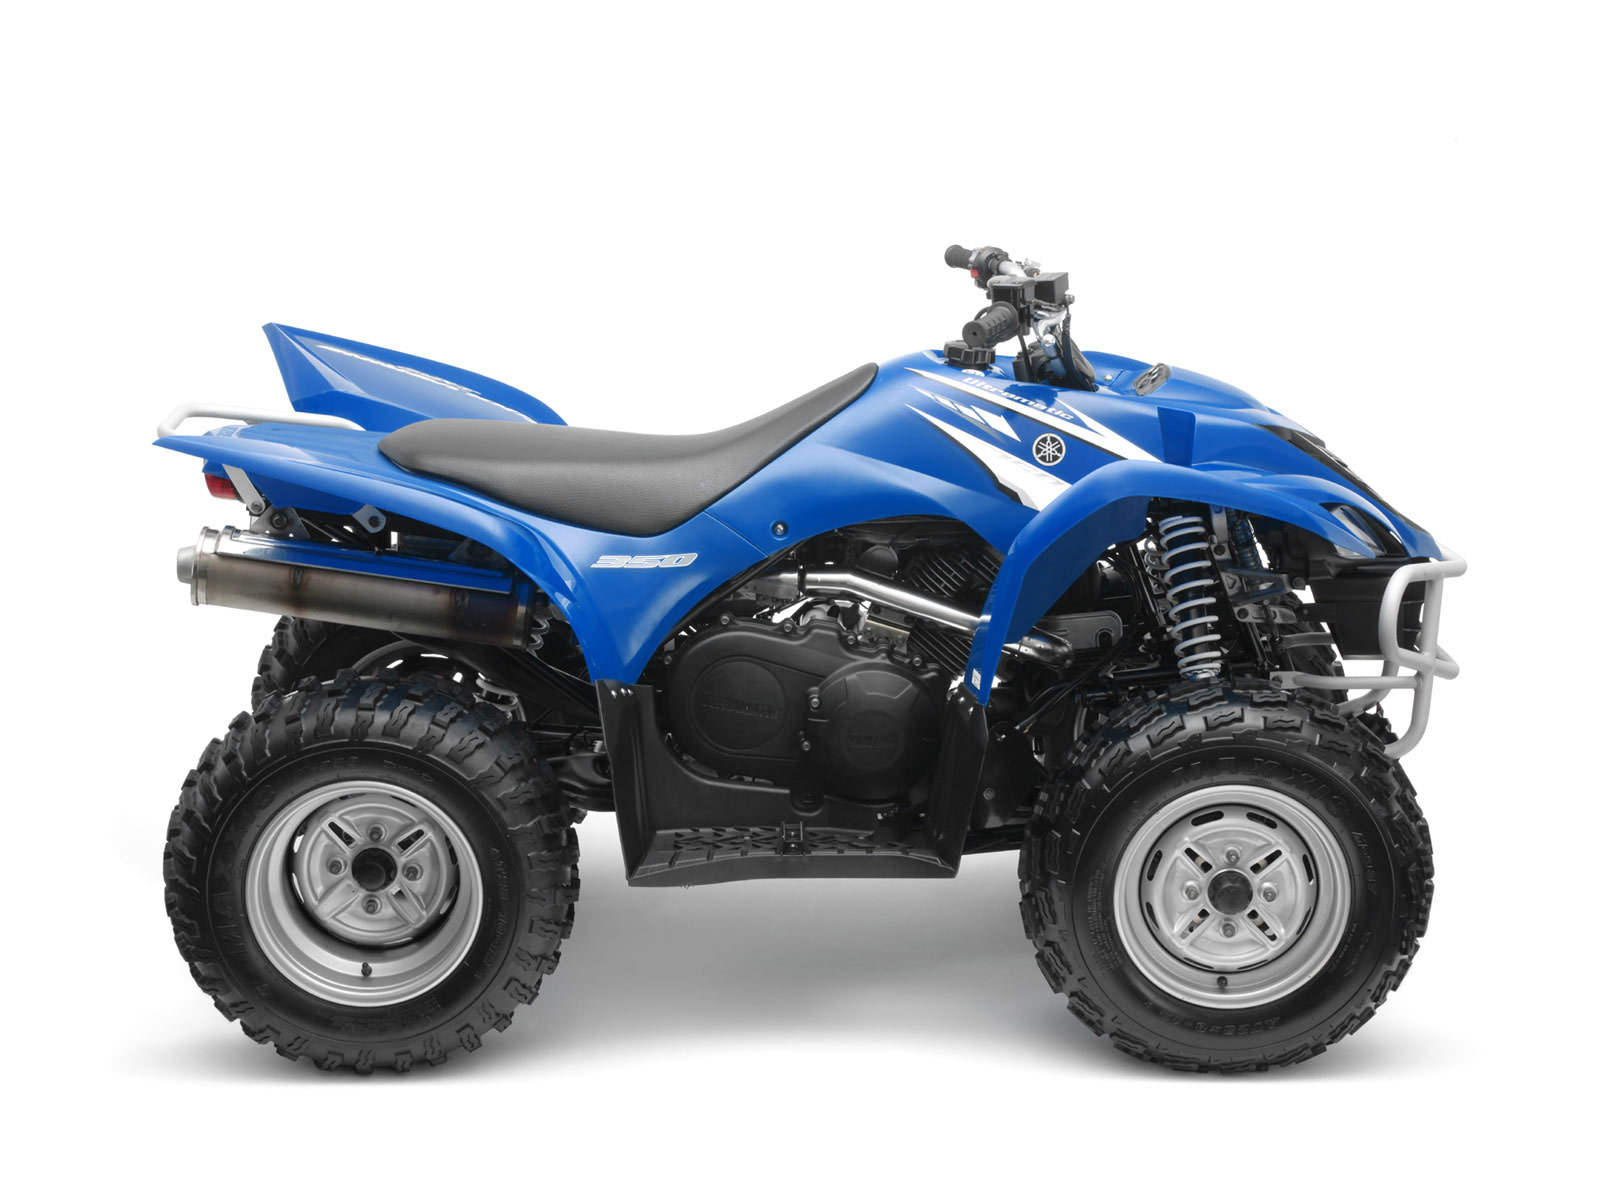 2008 yamaha wolverine 350 atv pictures review specifications for Yamaha 350 atv